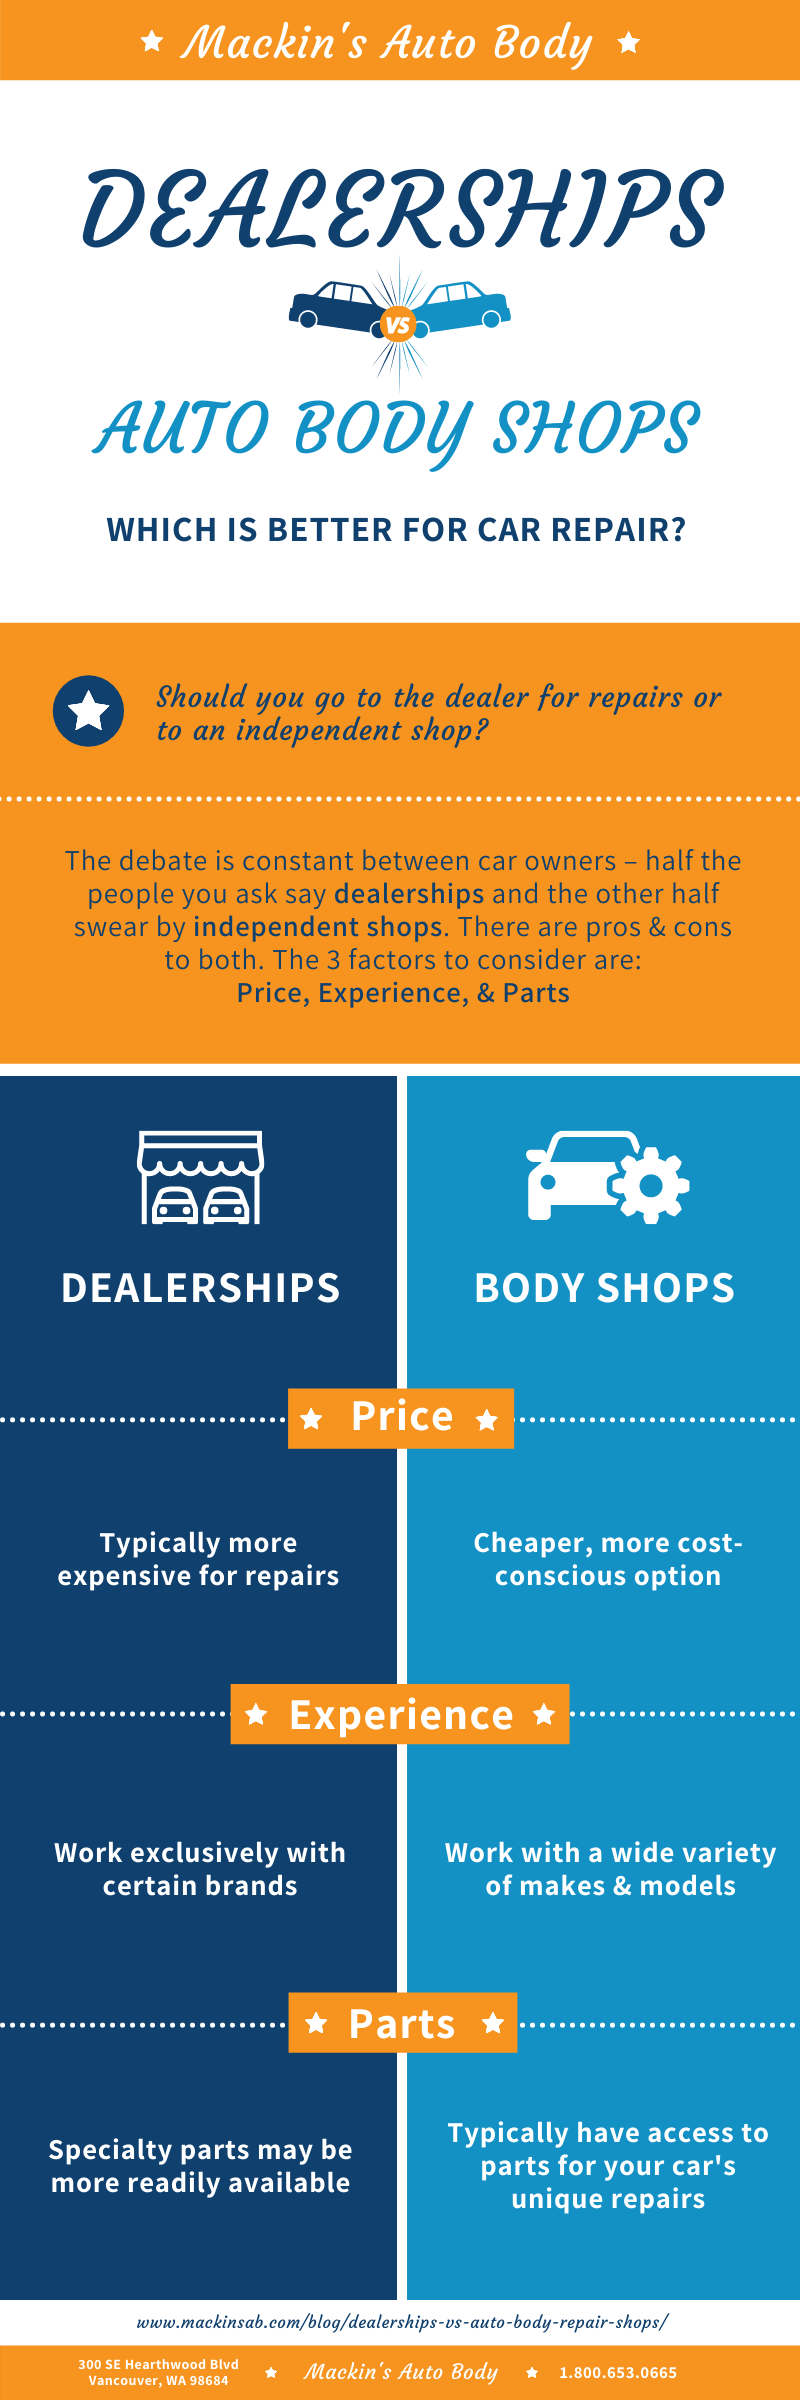 Body Shop or Dealership for collision repair work